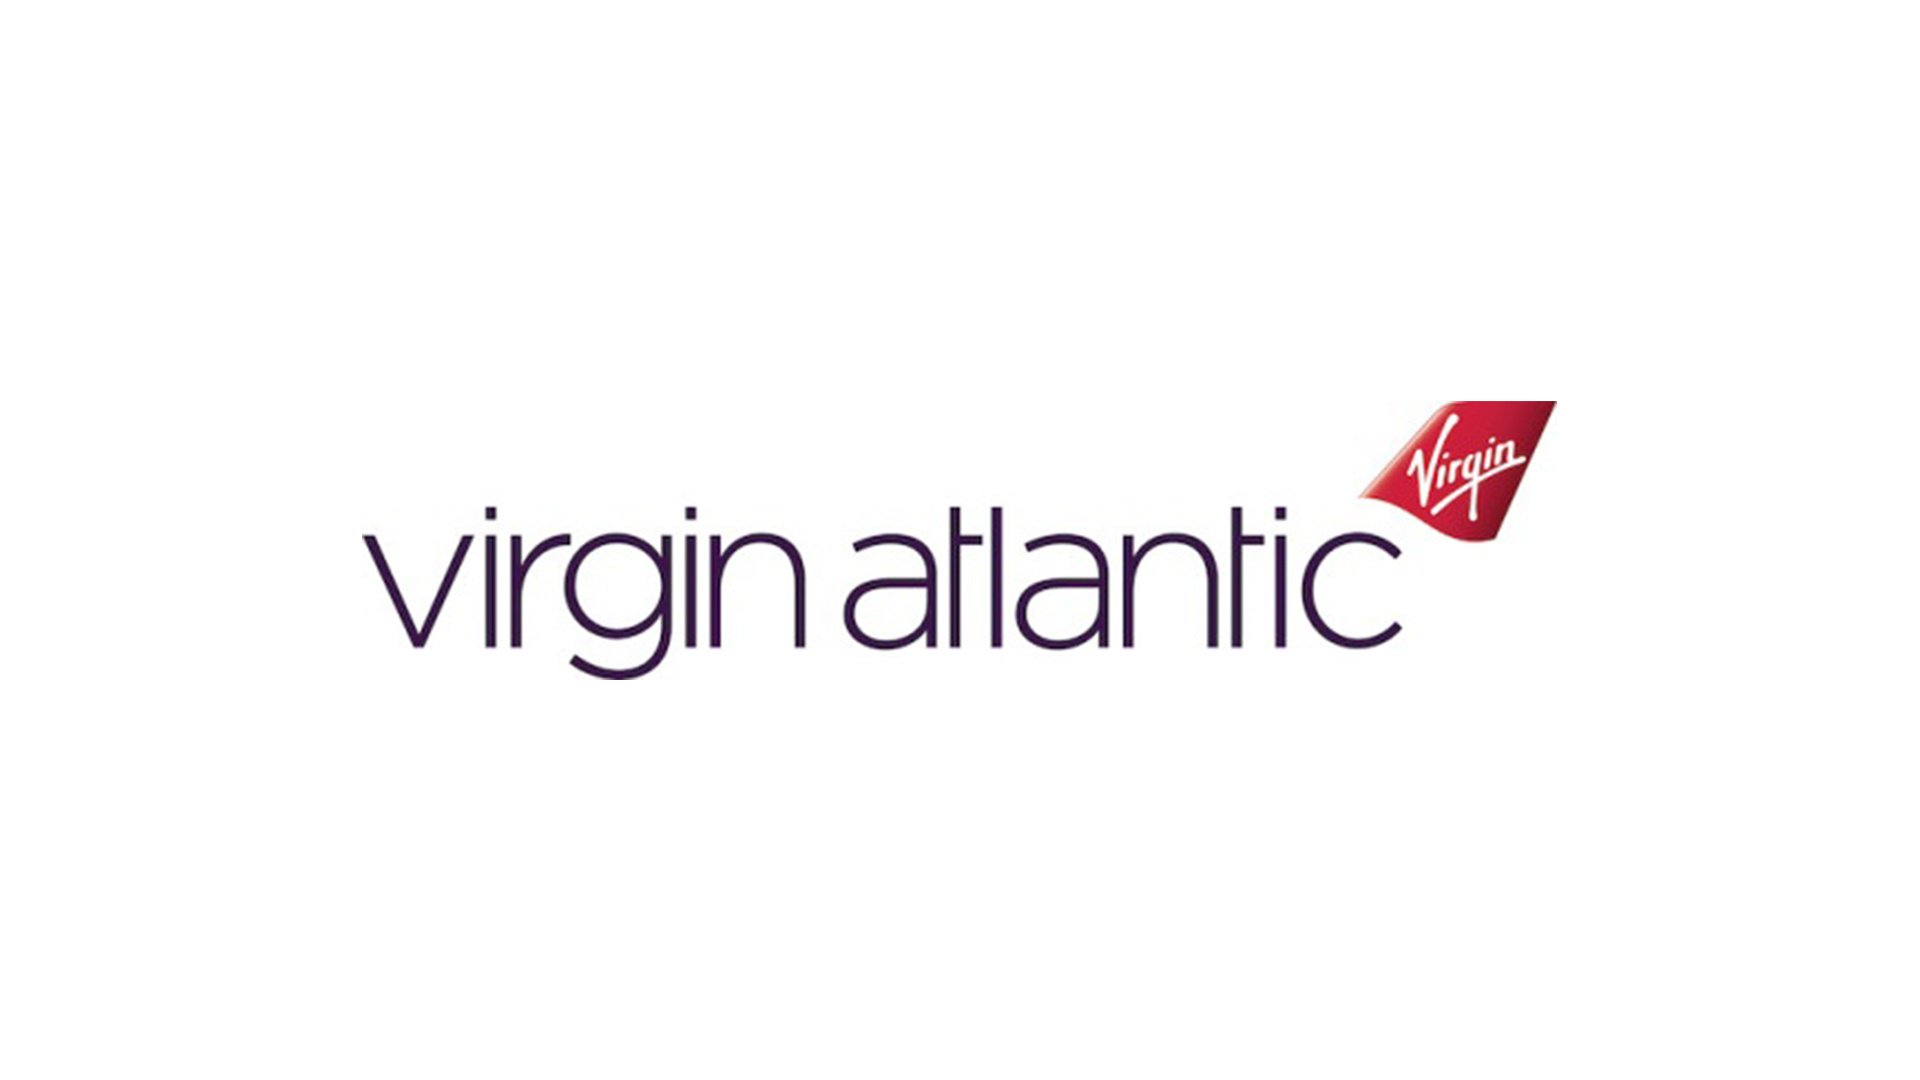 Content Marketing All-Stars Q&A: Claire Cronin of Virgin Atlantic